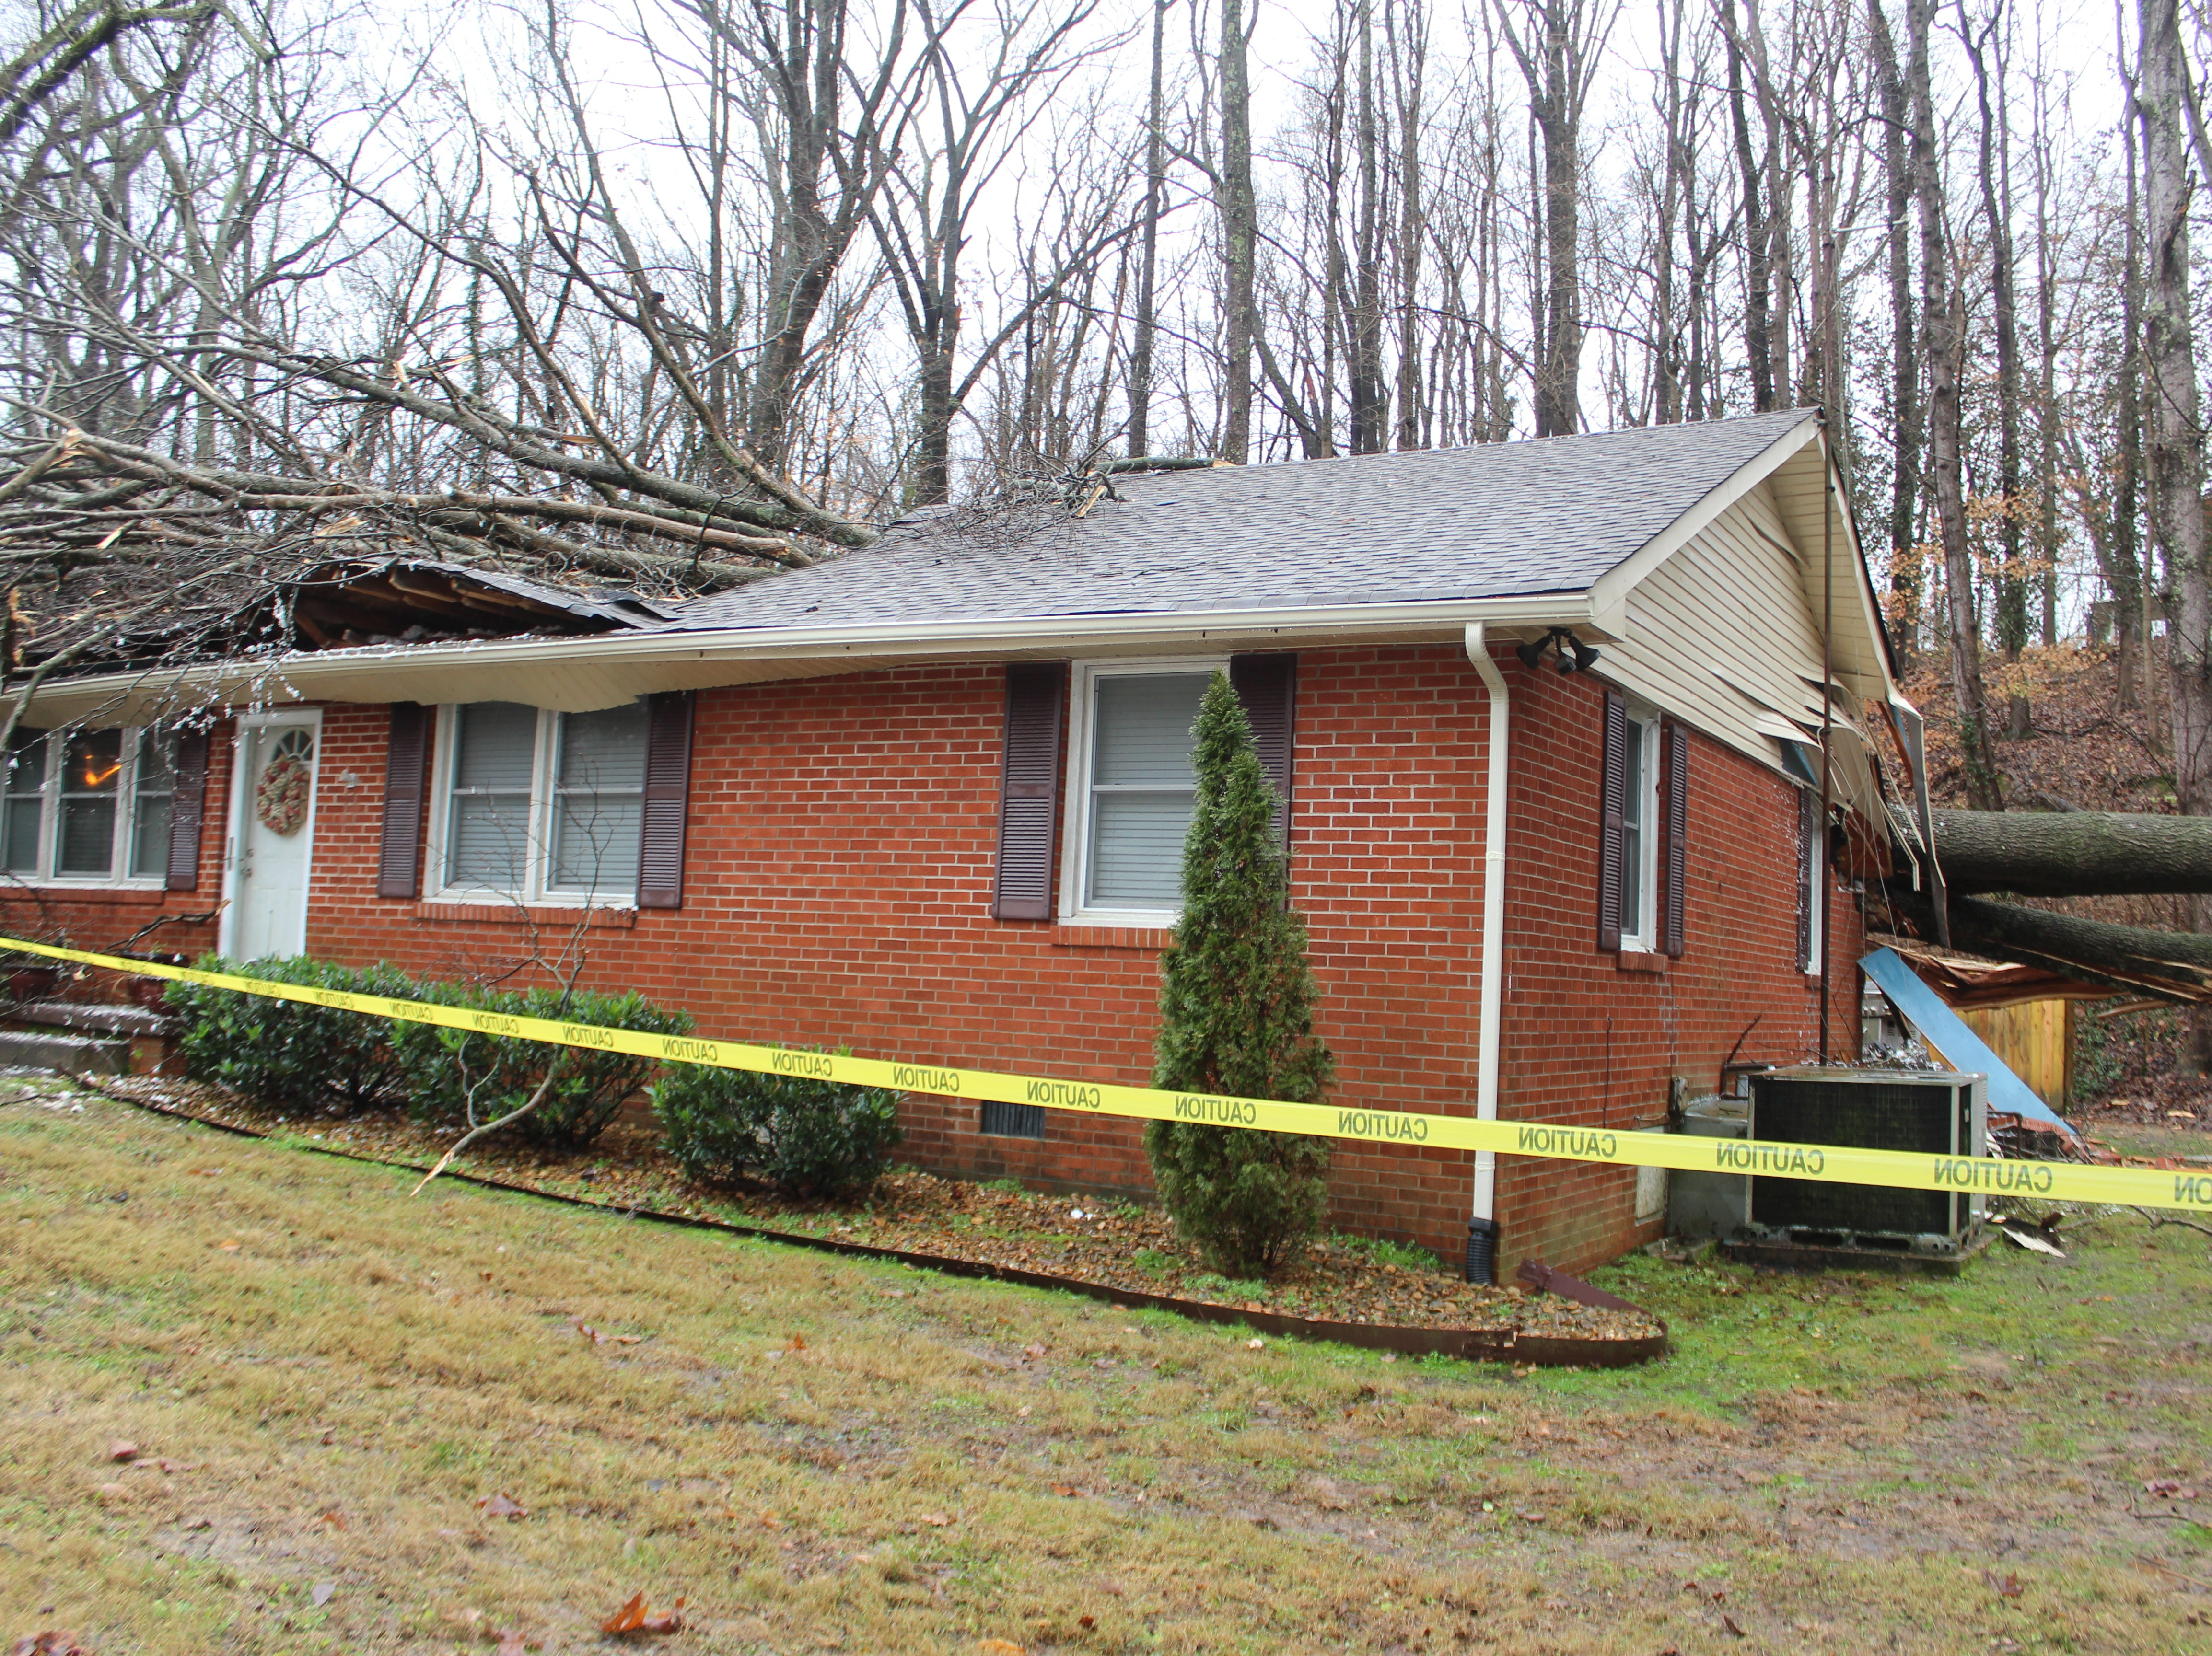 A tree smashed into this home on Hickory Grove Blvd. in Clarksville on Monday afternoon as strong storms swept through the area.